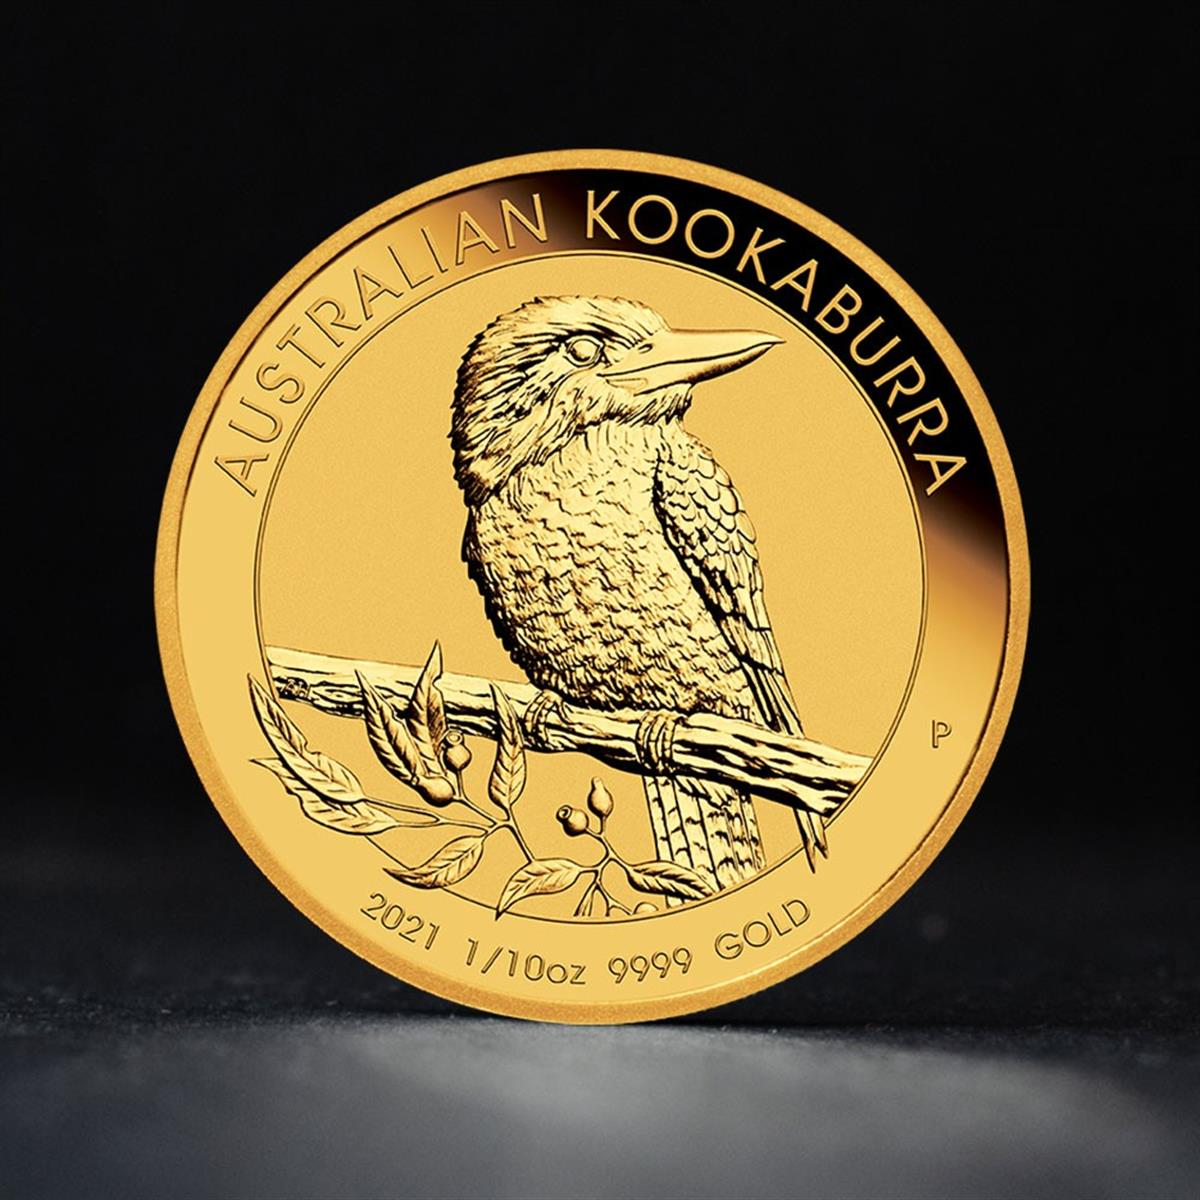 1/10 oz Gold Coin 2021 Kookaburra - Perth Mint